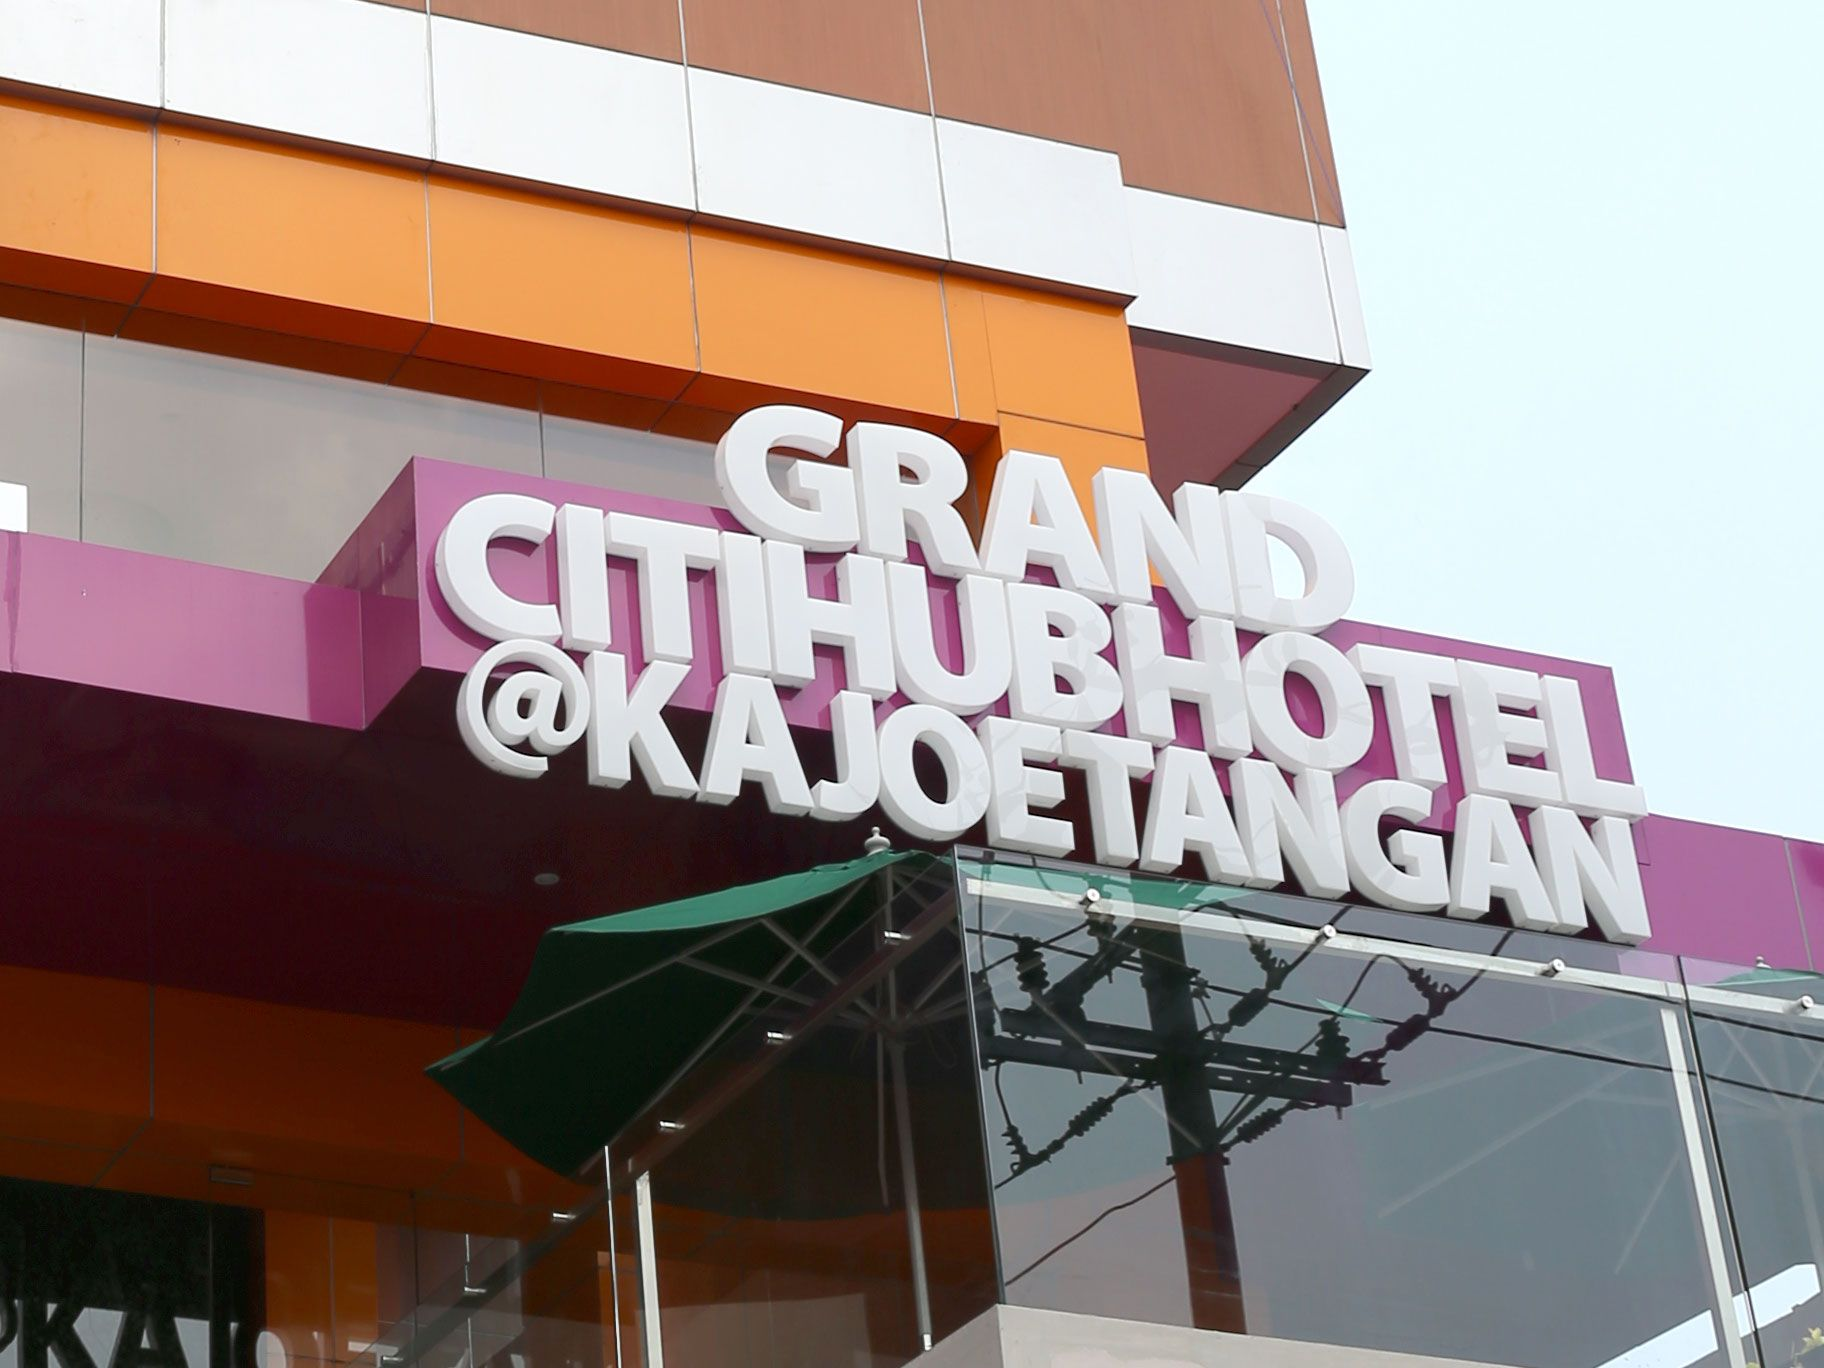 Hotels In Malang Book Promo Hotel East Java Voucher The 1o1 Oj Grand Citihub Kajoetangan